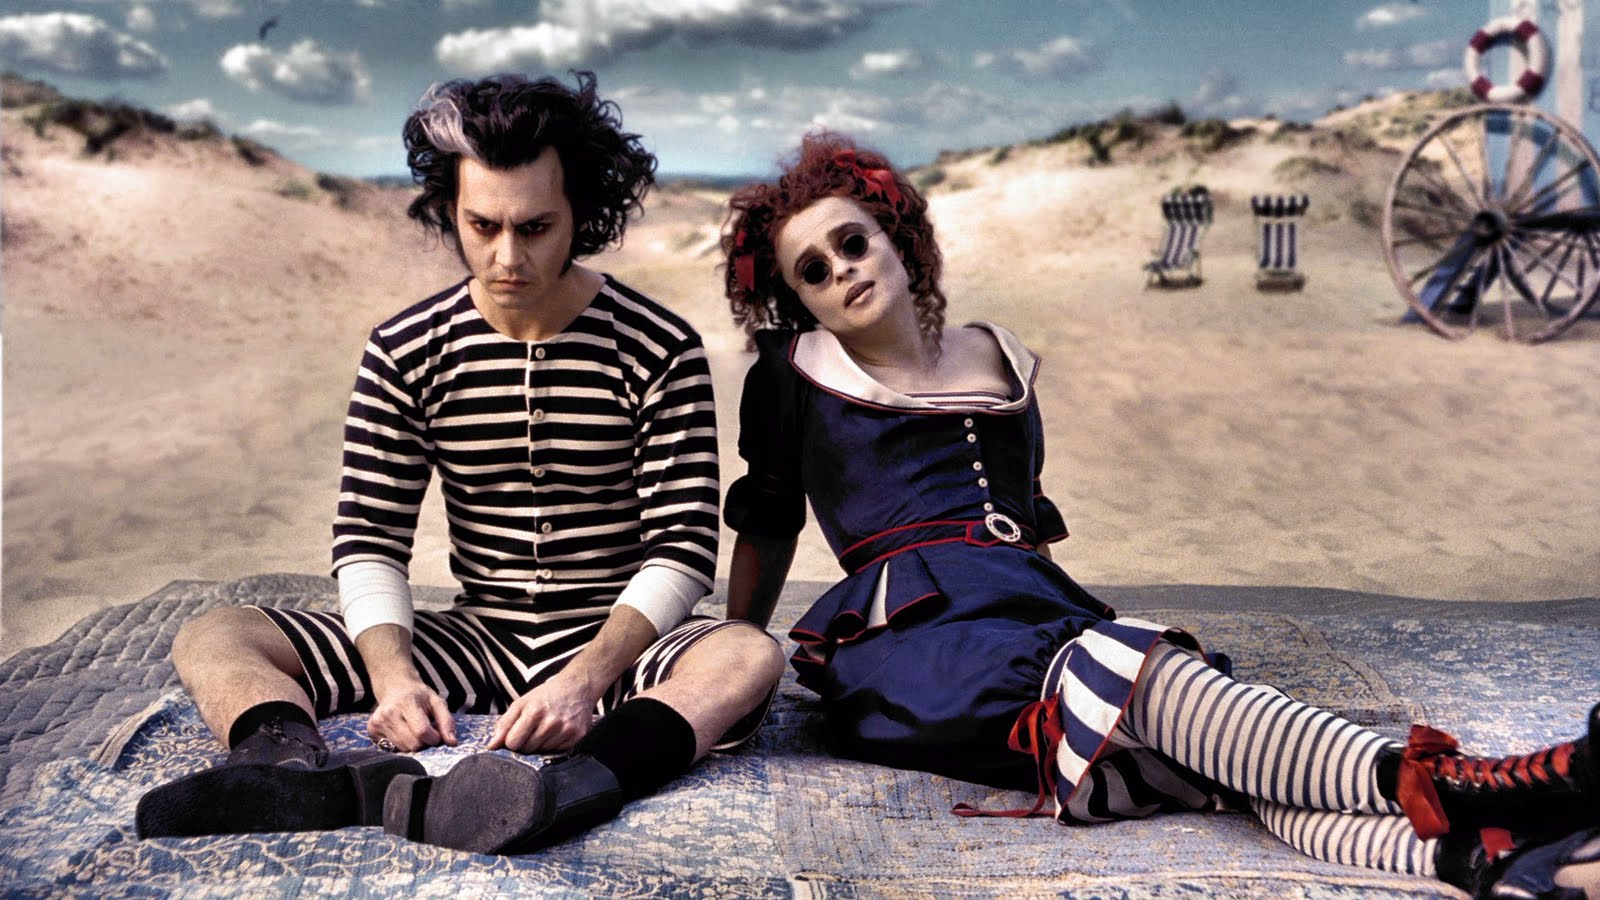 ISN'T IT DELICIOUS!: TIM BURTON'S GRUESOME VISION OF ...